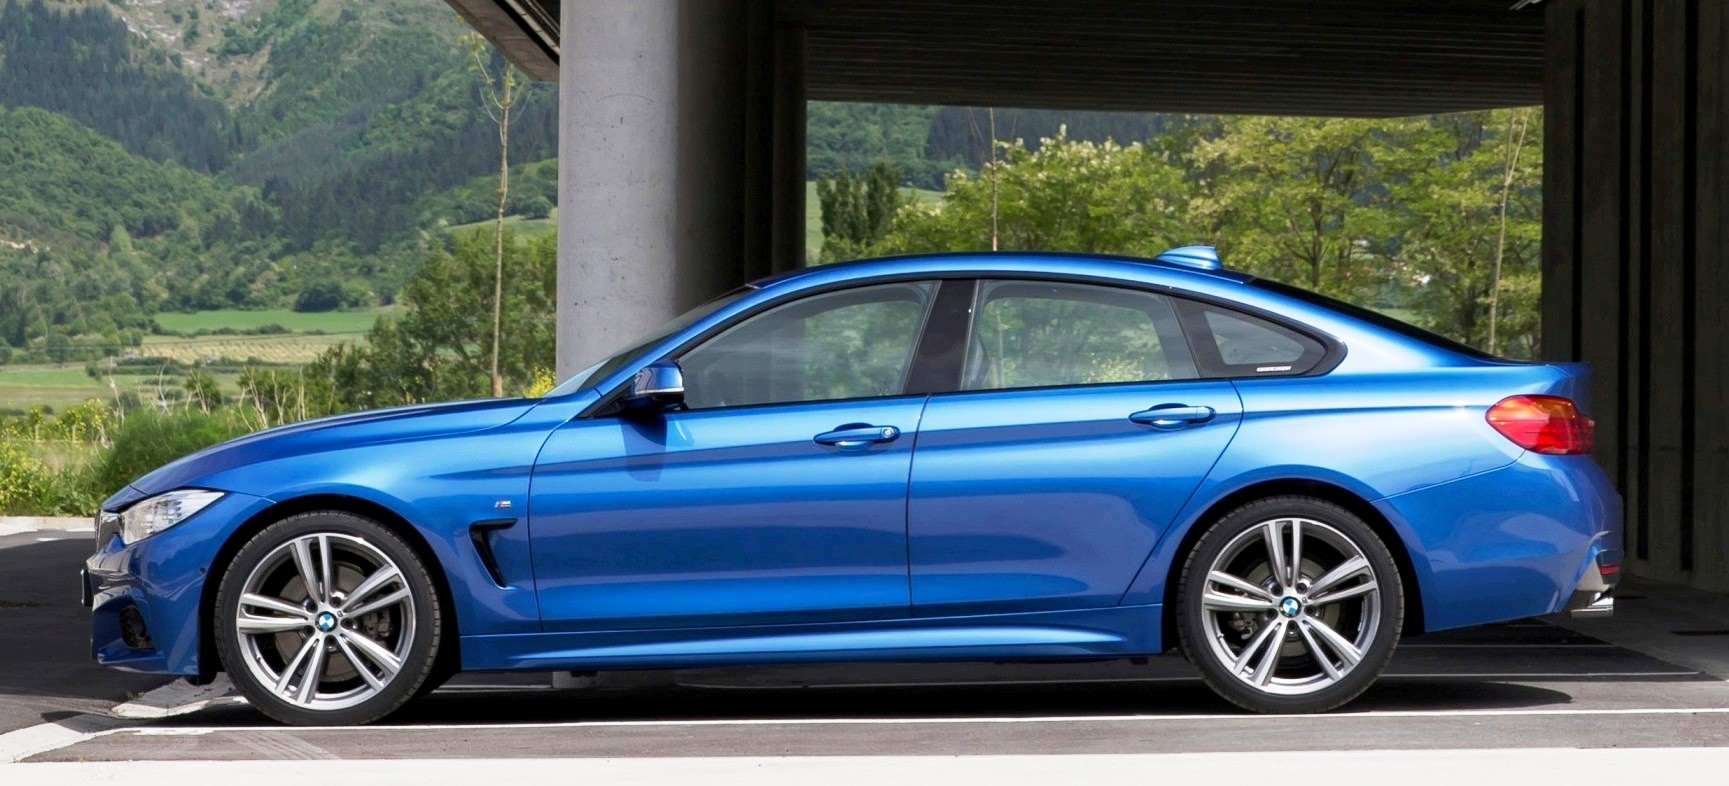 100 New Photos 2015 Bmw 428i And 435i Gran Coupes Are Segment Busting Awd 4 Doors M Sport Vs